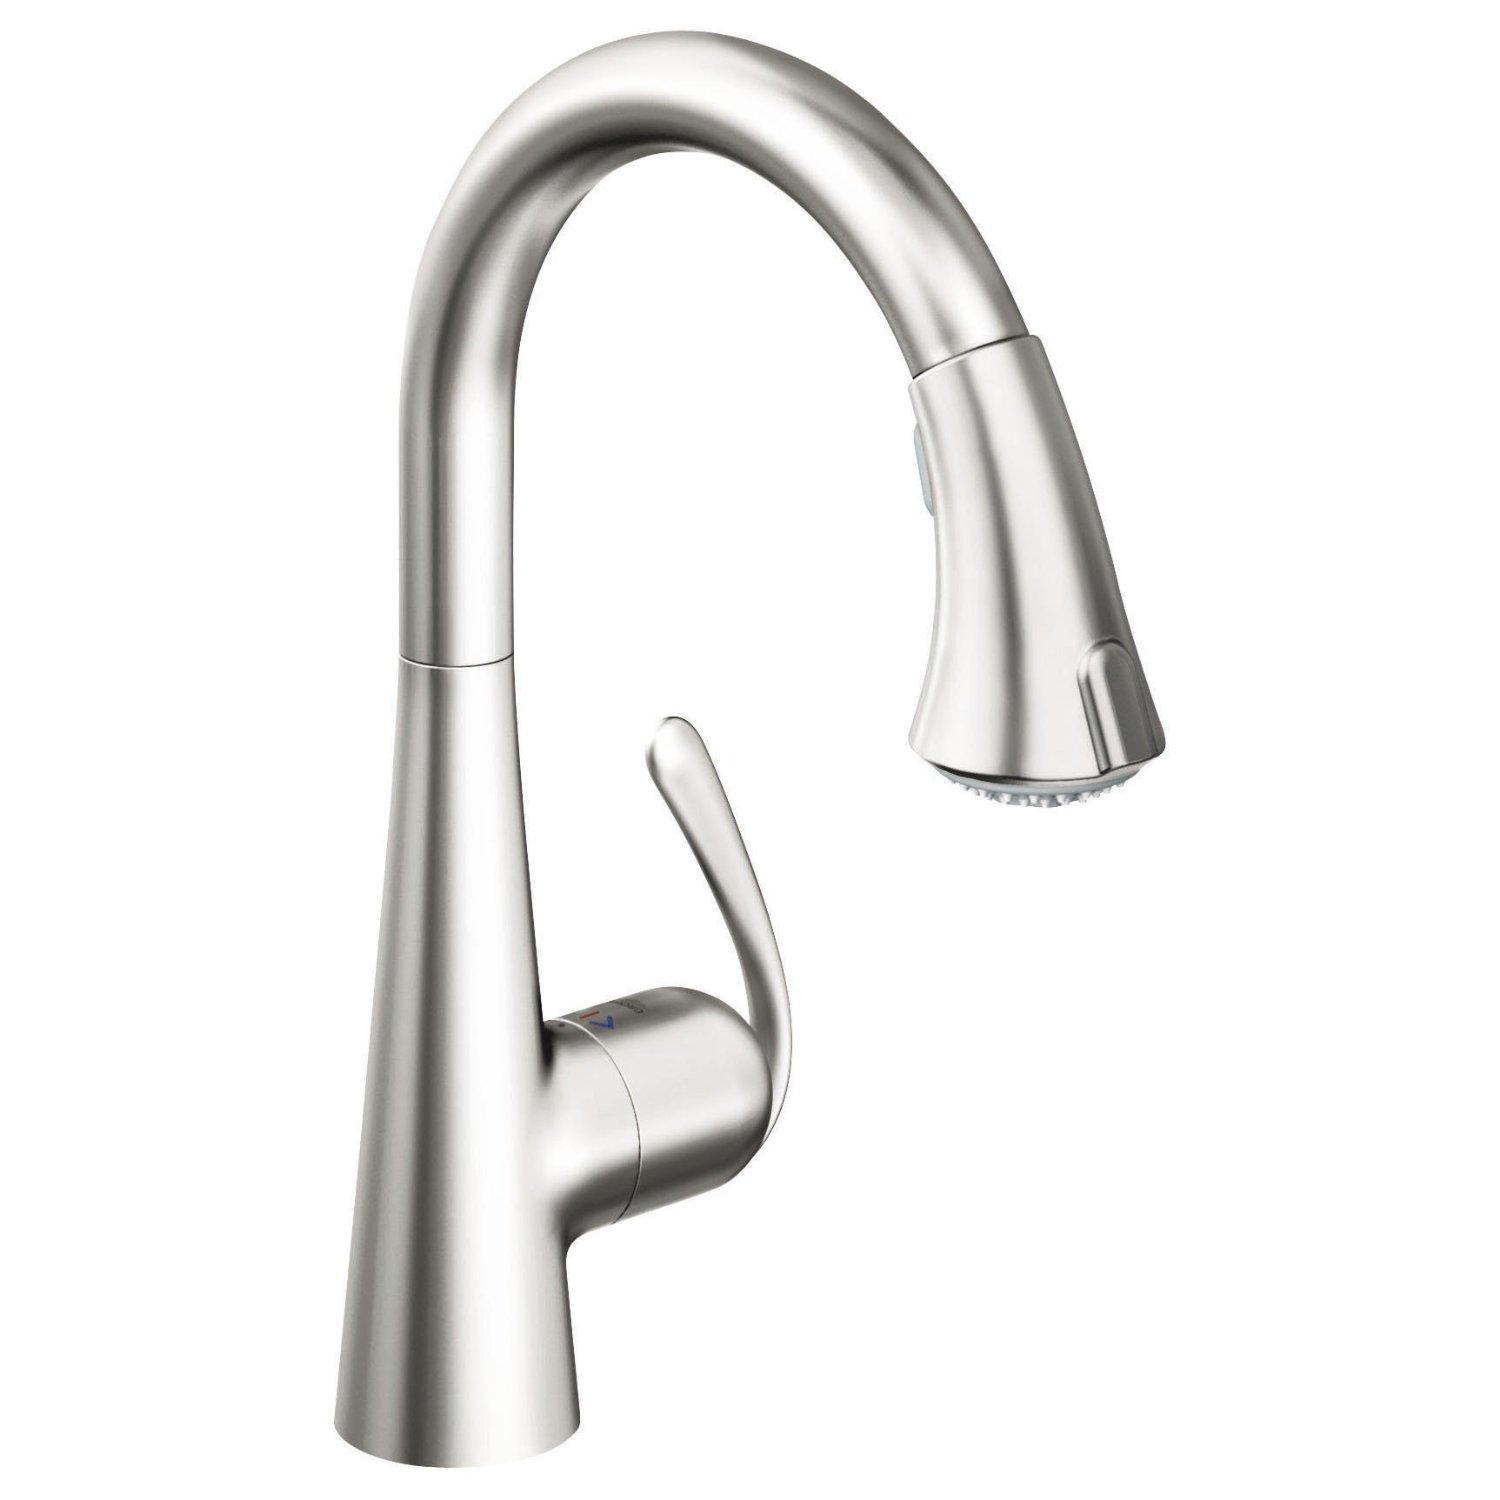 pull out kitchen faucets cheap kitchen faucets Grohe 32 SD0 Dual Spray Pull Out Kitchen Faucet Reviews